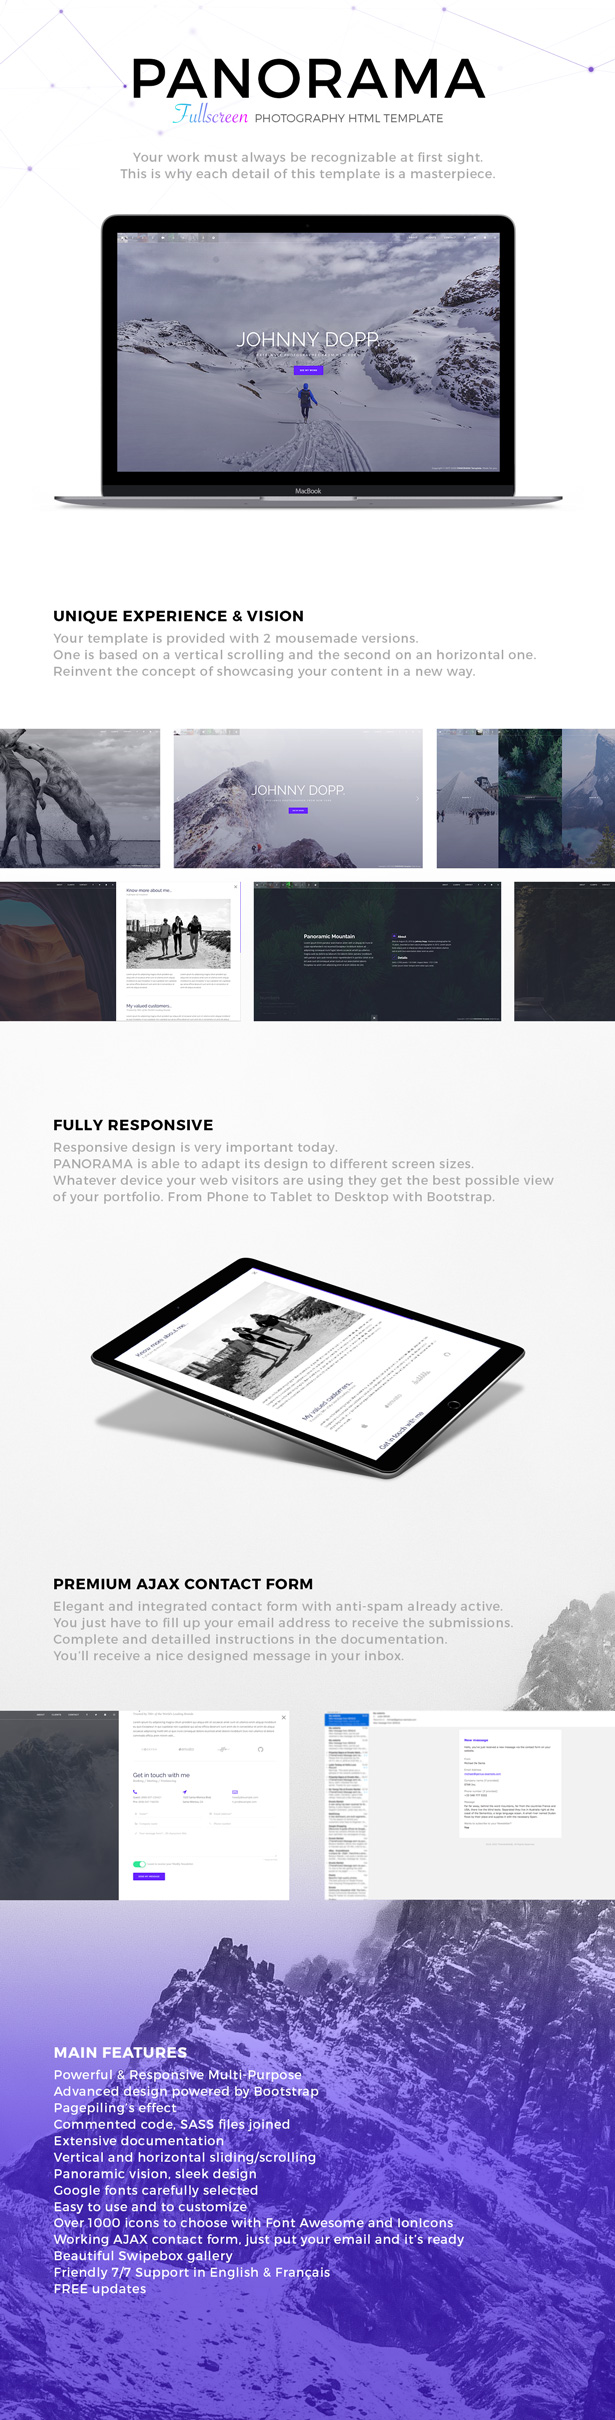 PANORAMA – Fullscreen Photography HTML Template (Photography)